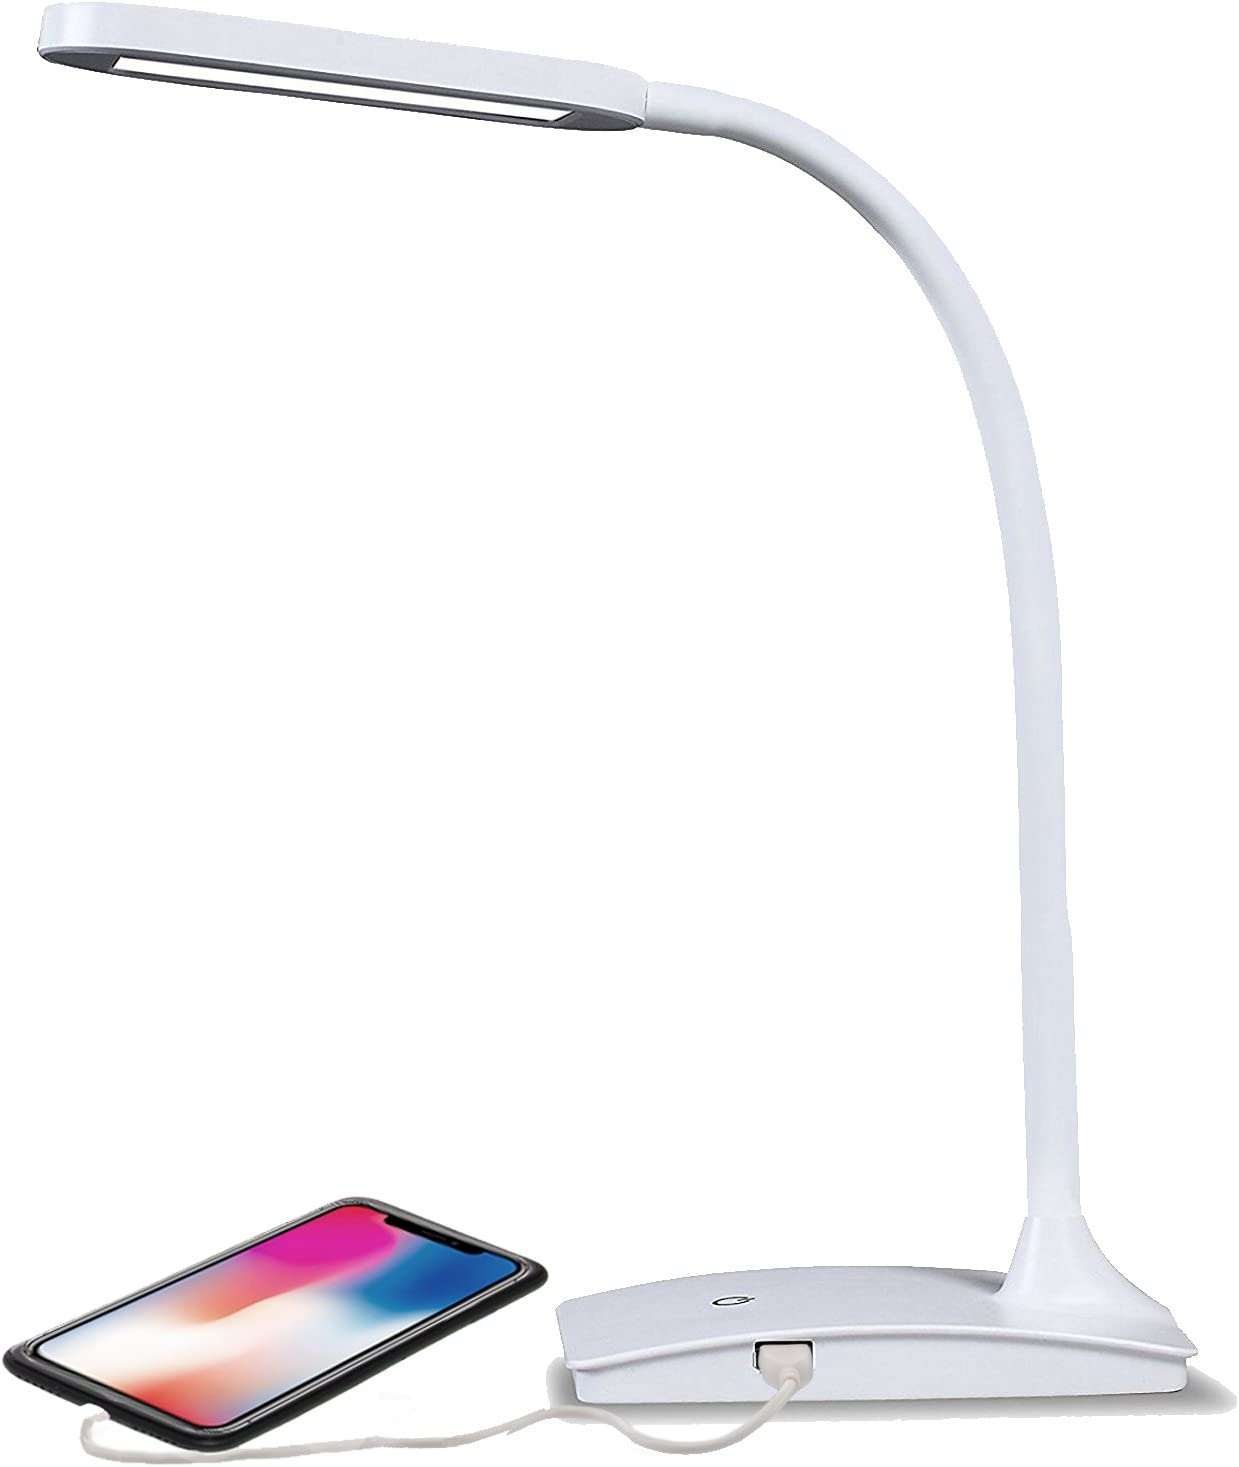 TW Lighting IVY-40WT The IVY LED Desk Lamp with USB Port, 3-Way ...